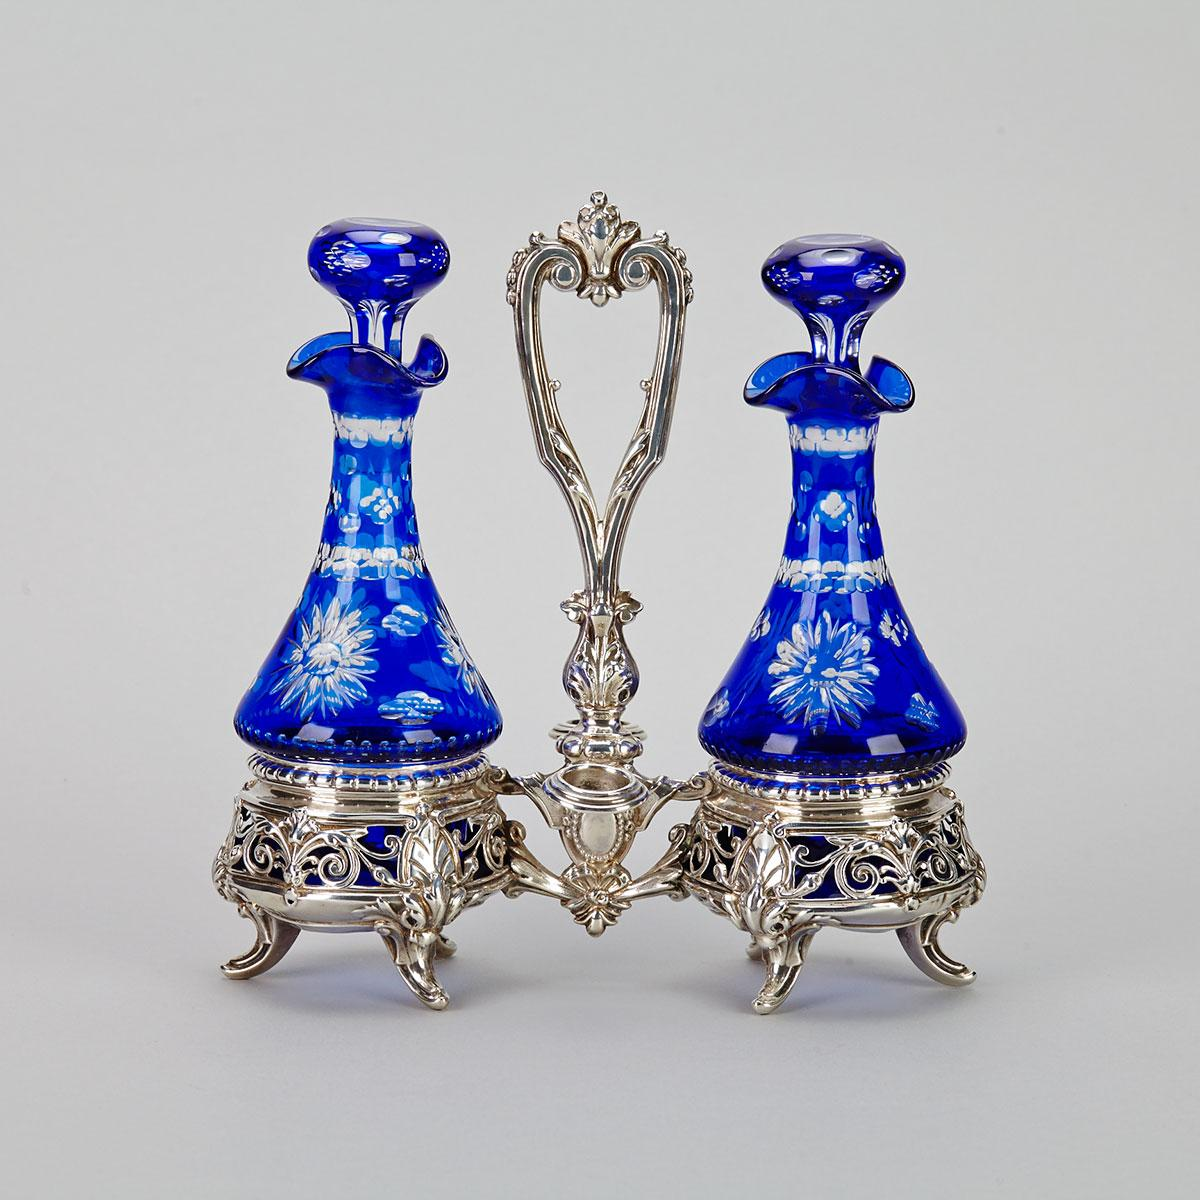 French Silver and Blue Glass Cruet, c.1870